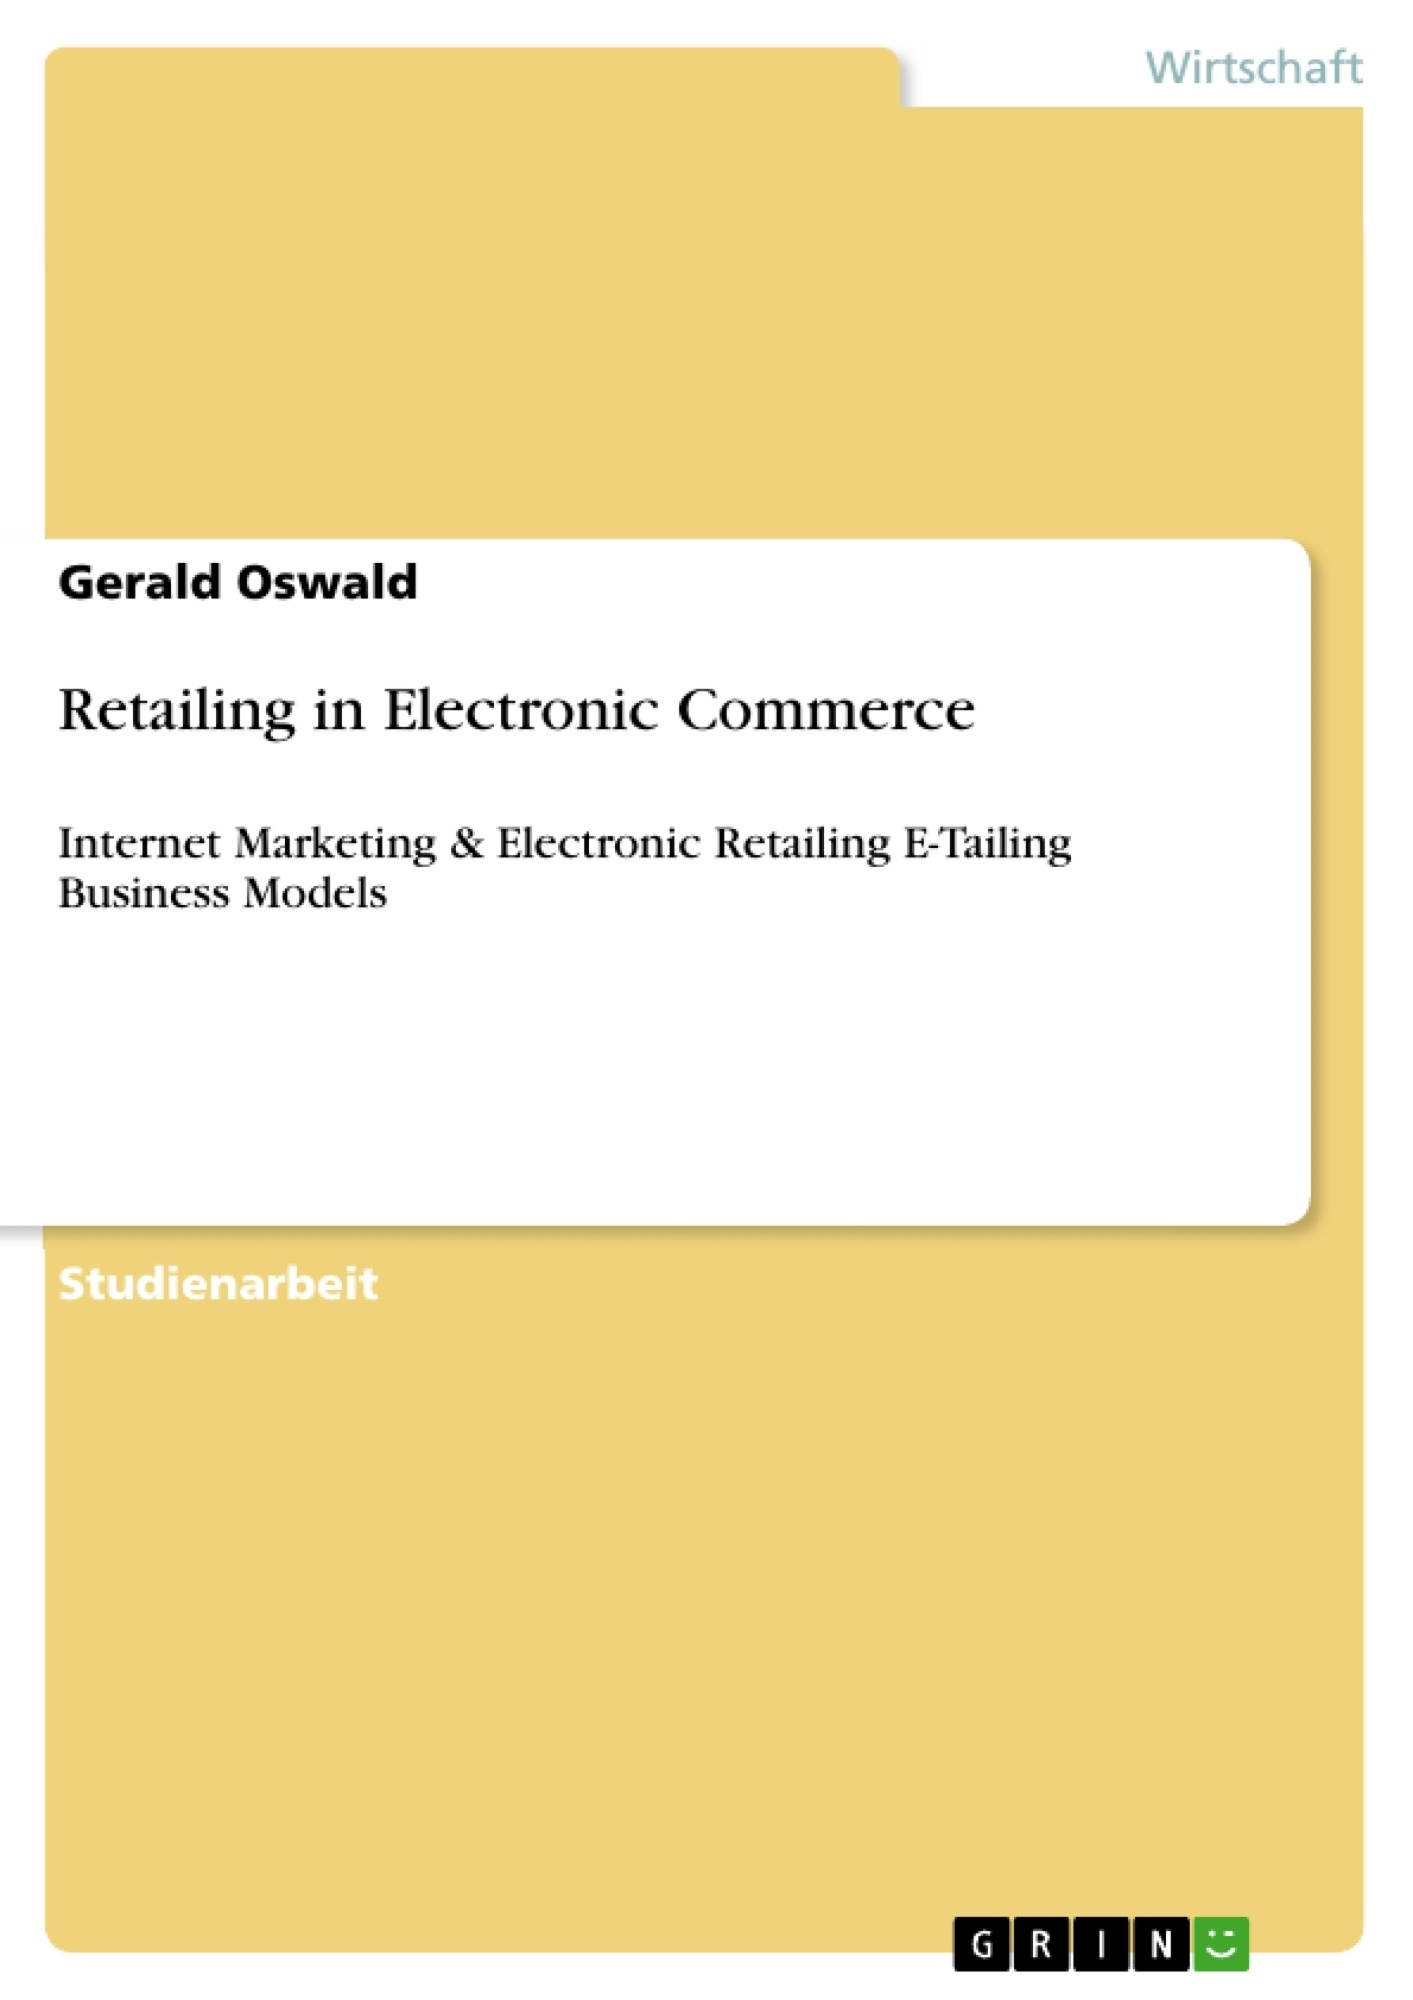 Titel: Retailing in Electronic Commerce